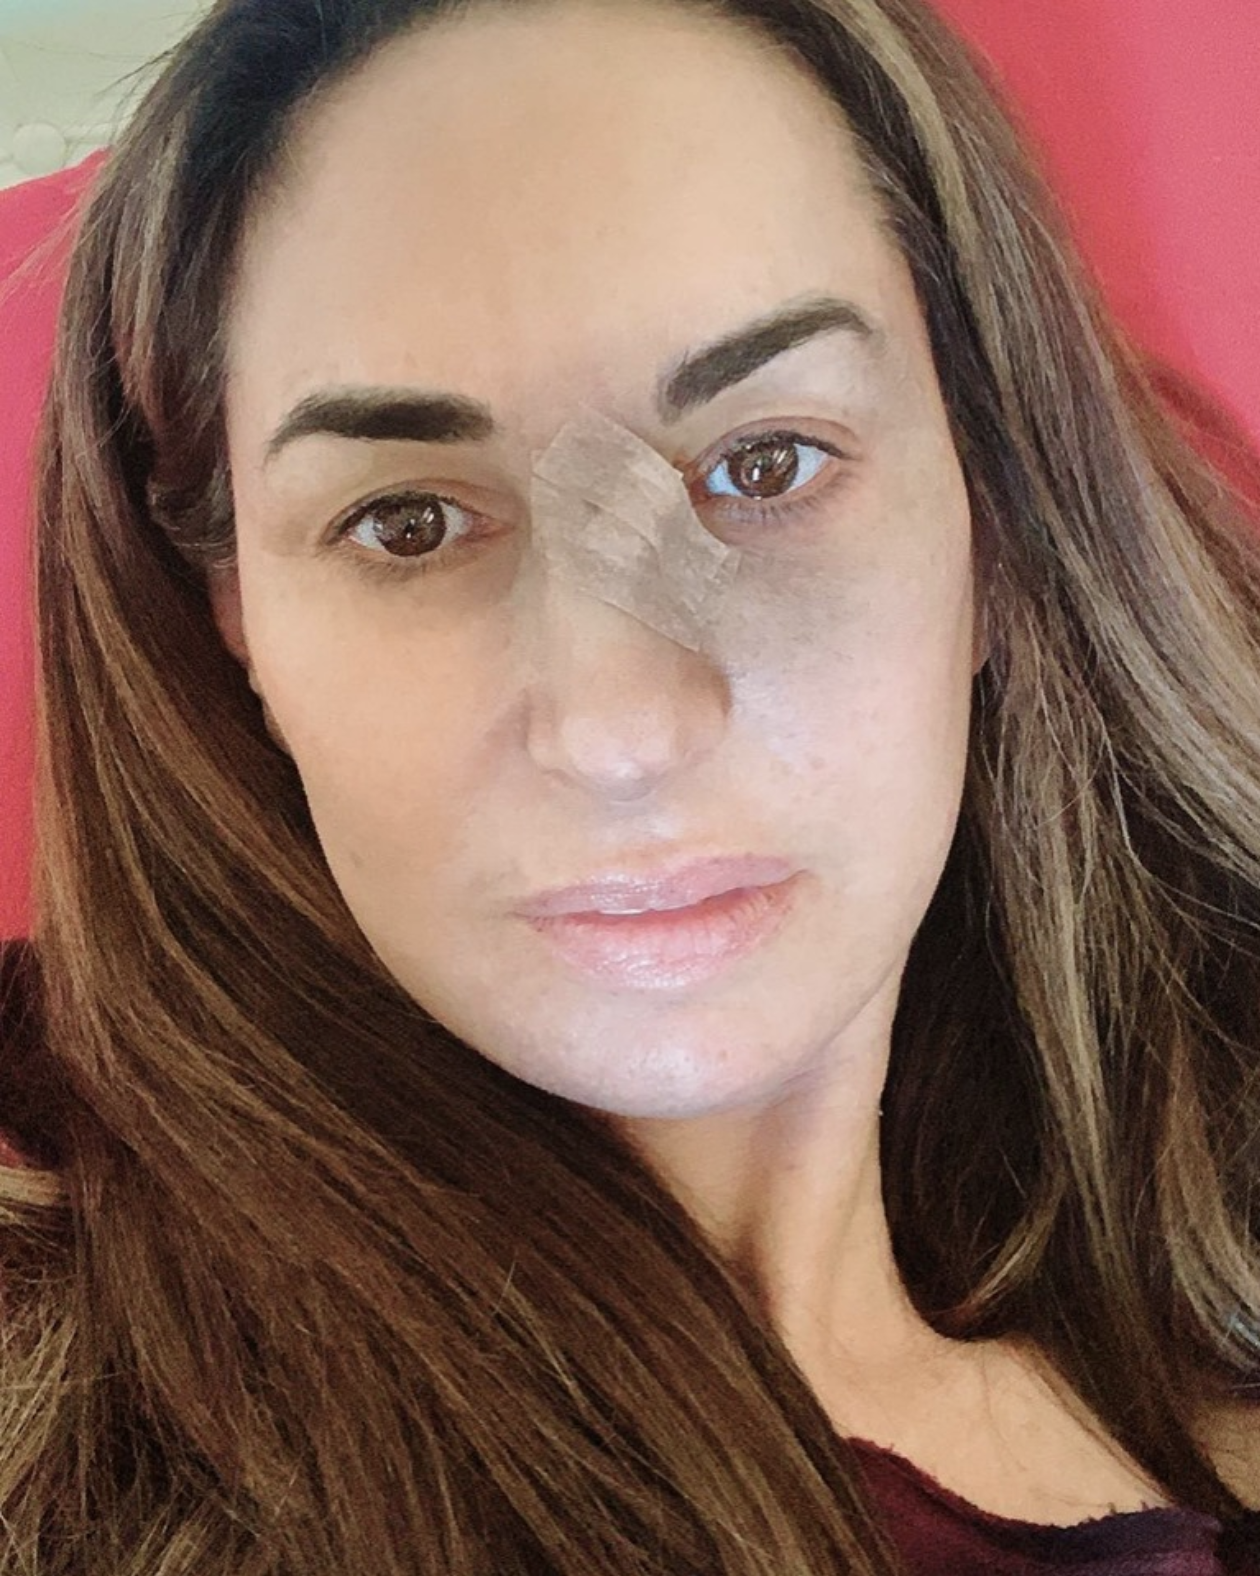 Basal Cell Carcinoma and Mohs Surgery